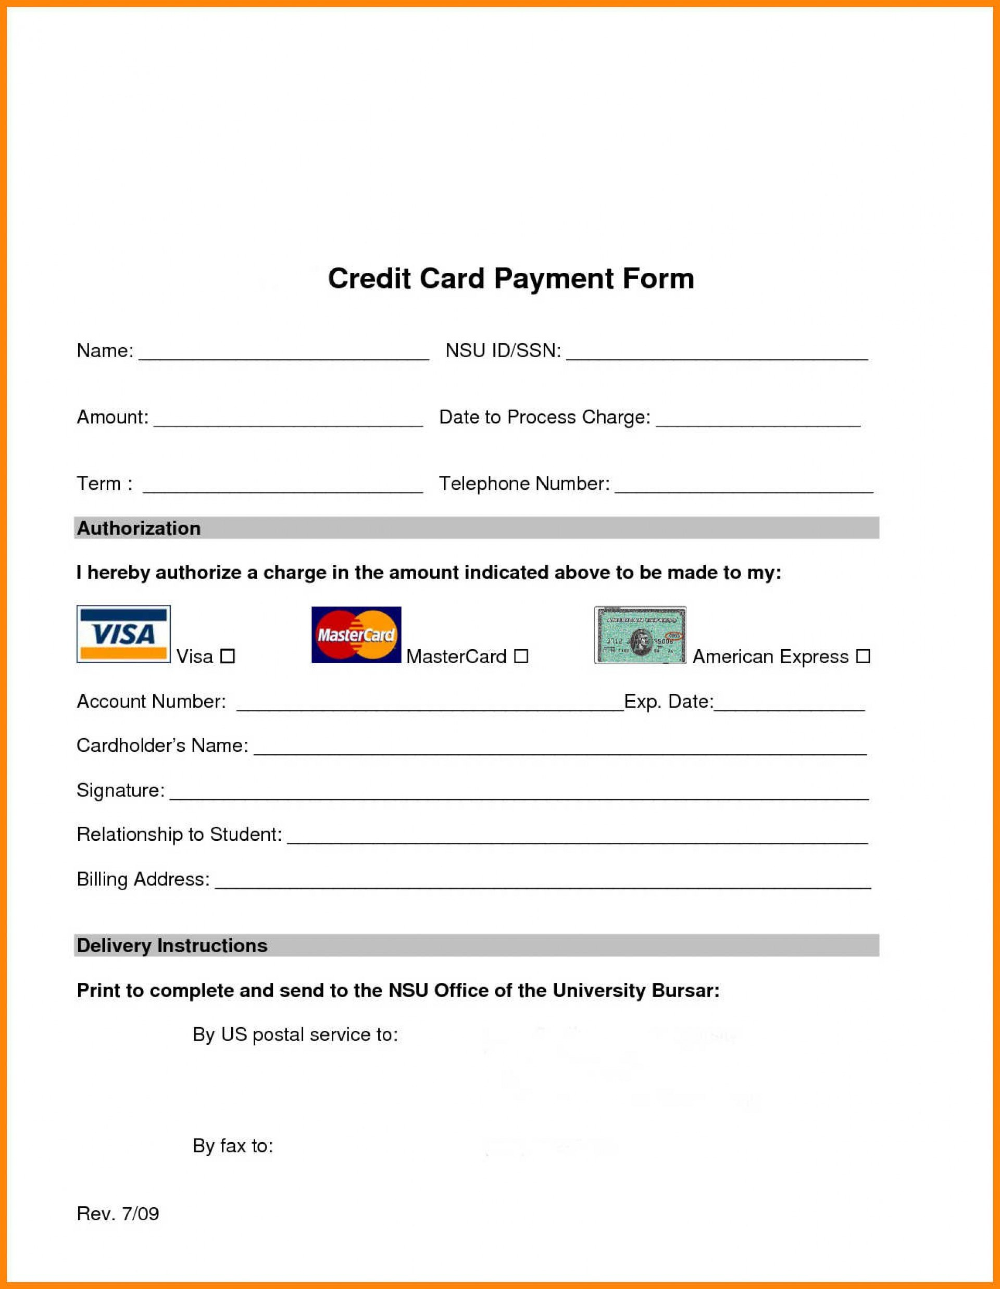 Hilton Credit Card Authorization Form Template Pdf Unbelievable With Regard To Credit Card Payment Form Template Card Template Credit Card Credit Card Payment